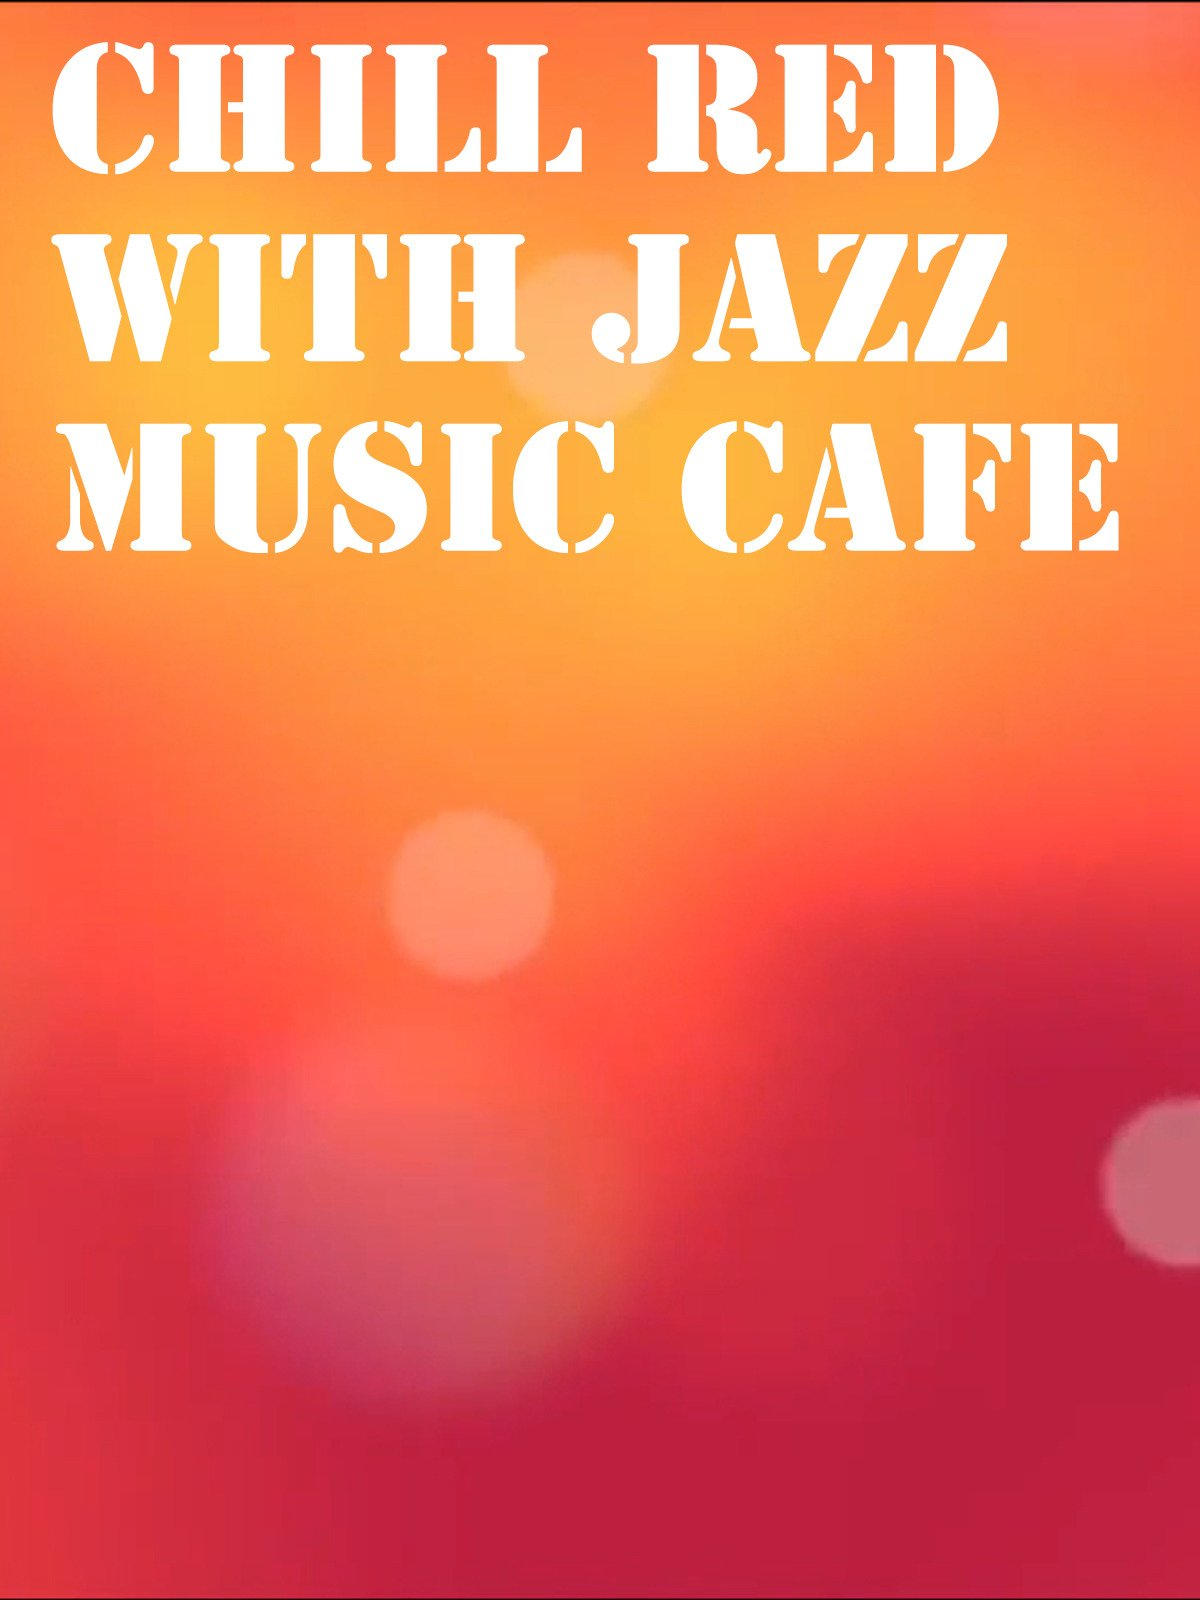 Chill Red with Jazz Music Cafe